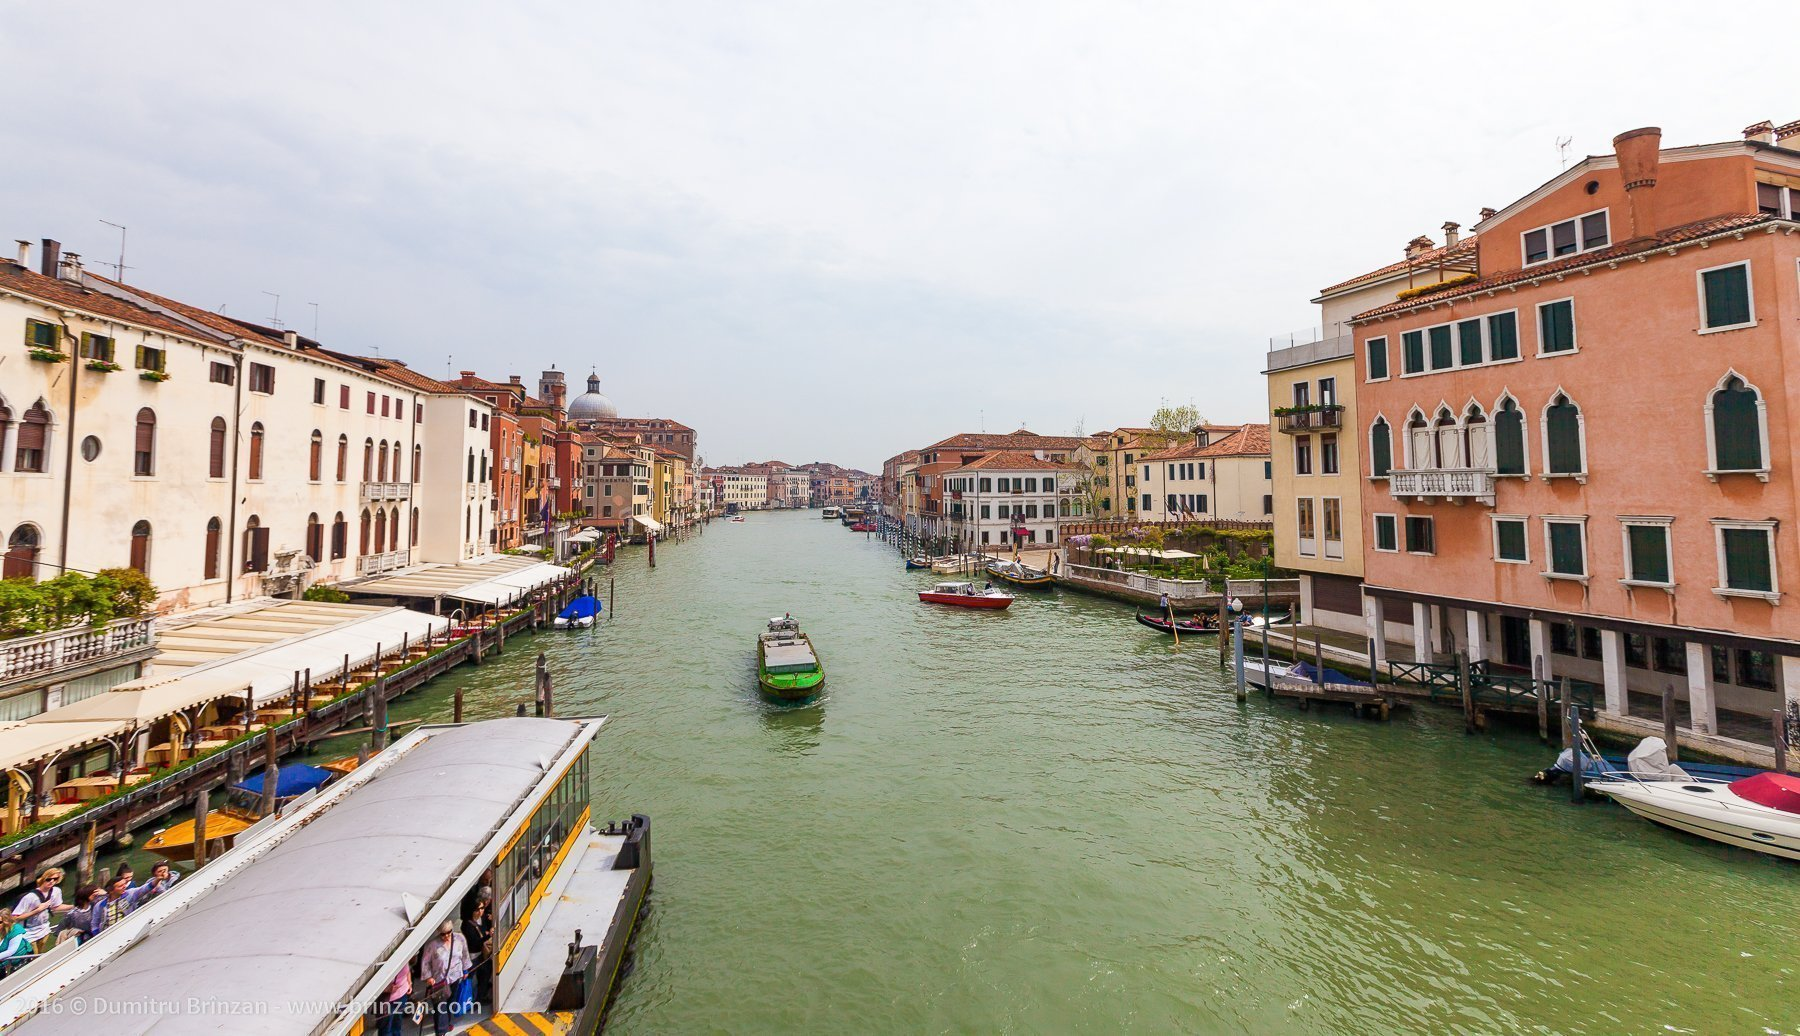 The water in Venice is green. This makes it feel dirtier than it is.